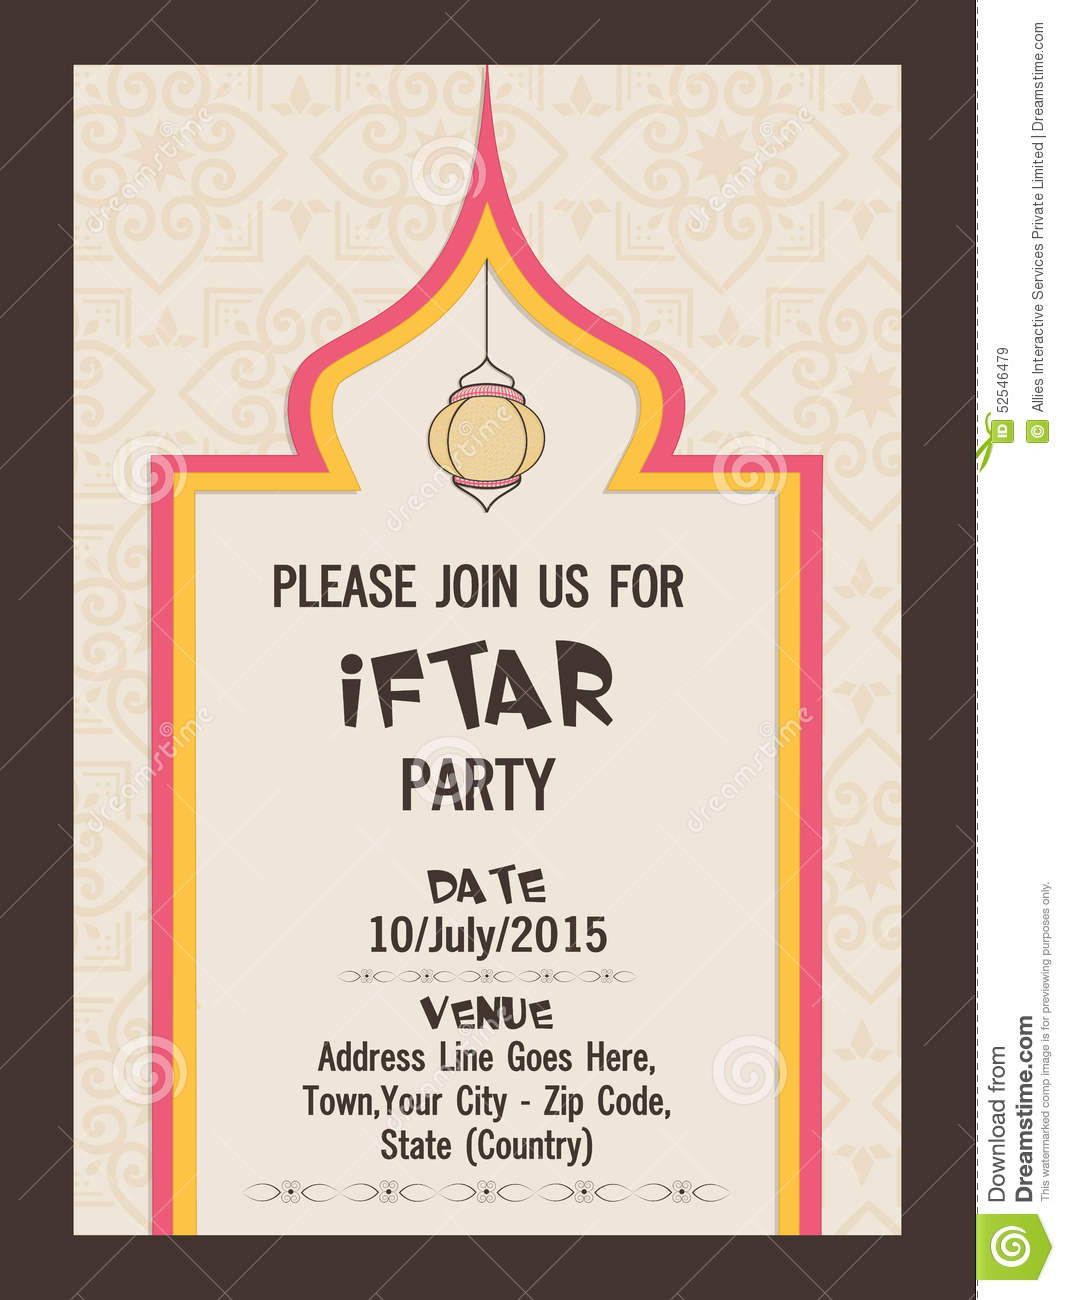 Invitation card for ramadan kareem iftar party celebration stock download invitation card for ramadan kareem iftar party celebration stock illustration illustration of delicious stopboris Gallery